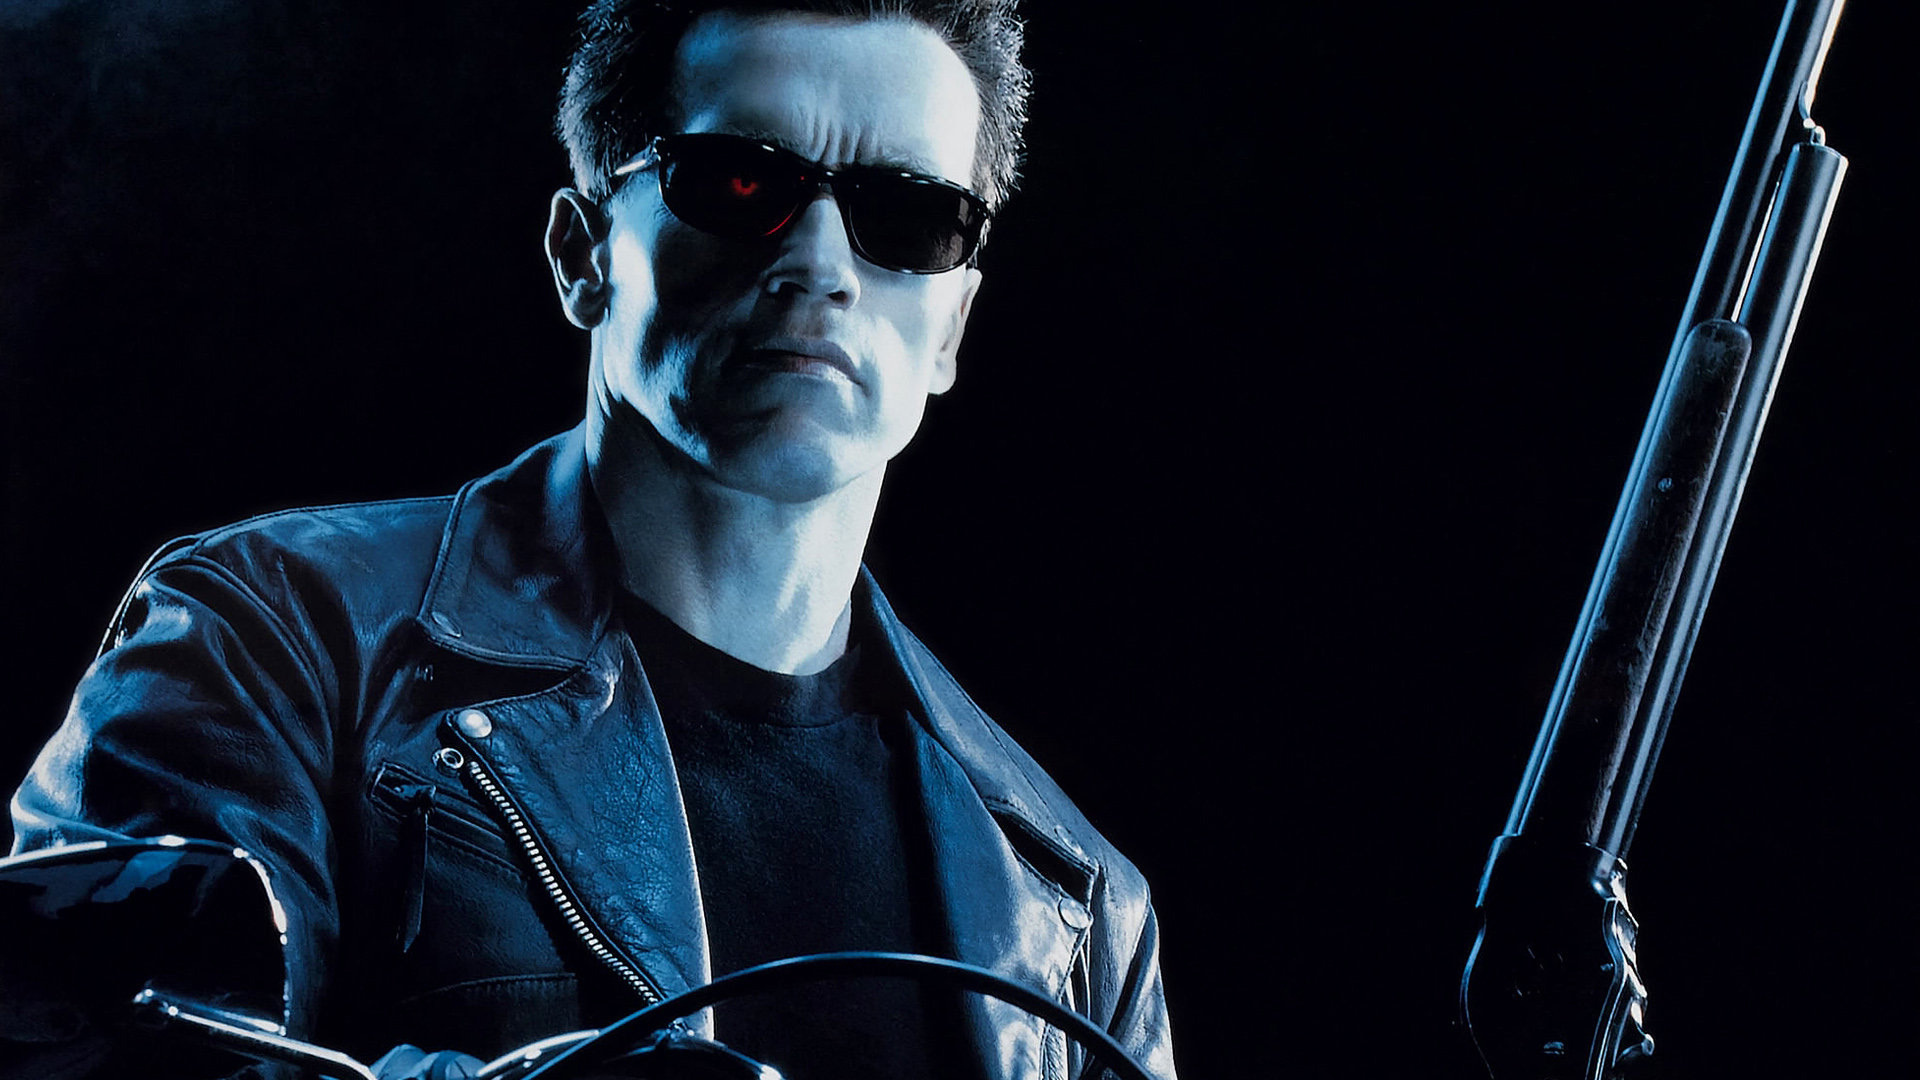 TERMINATOR 2 JUDGMENT DAY Will Receive A 3D Rerelease in 2017 1920x1080